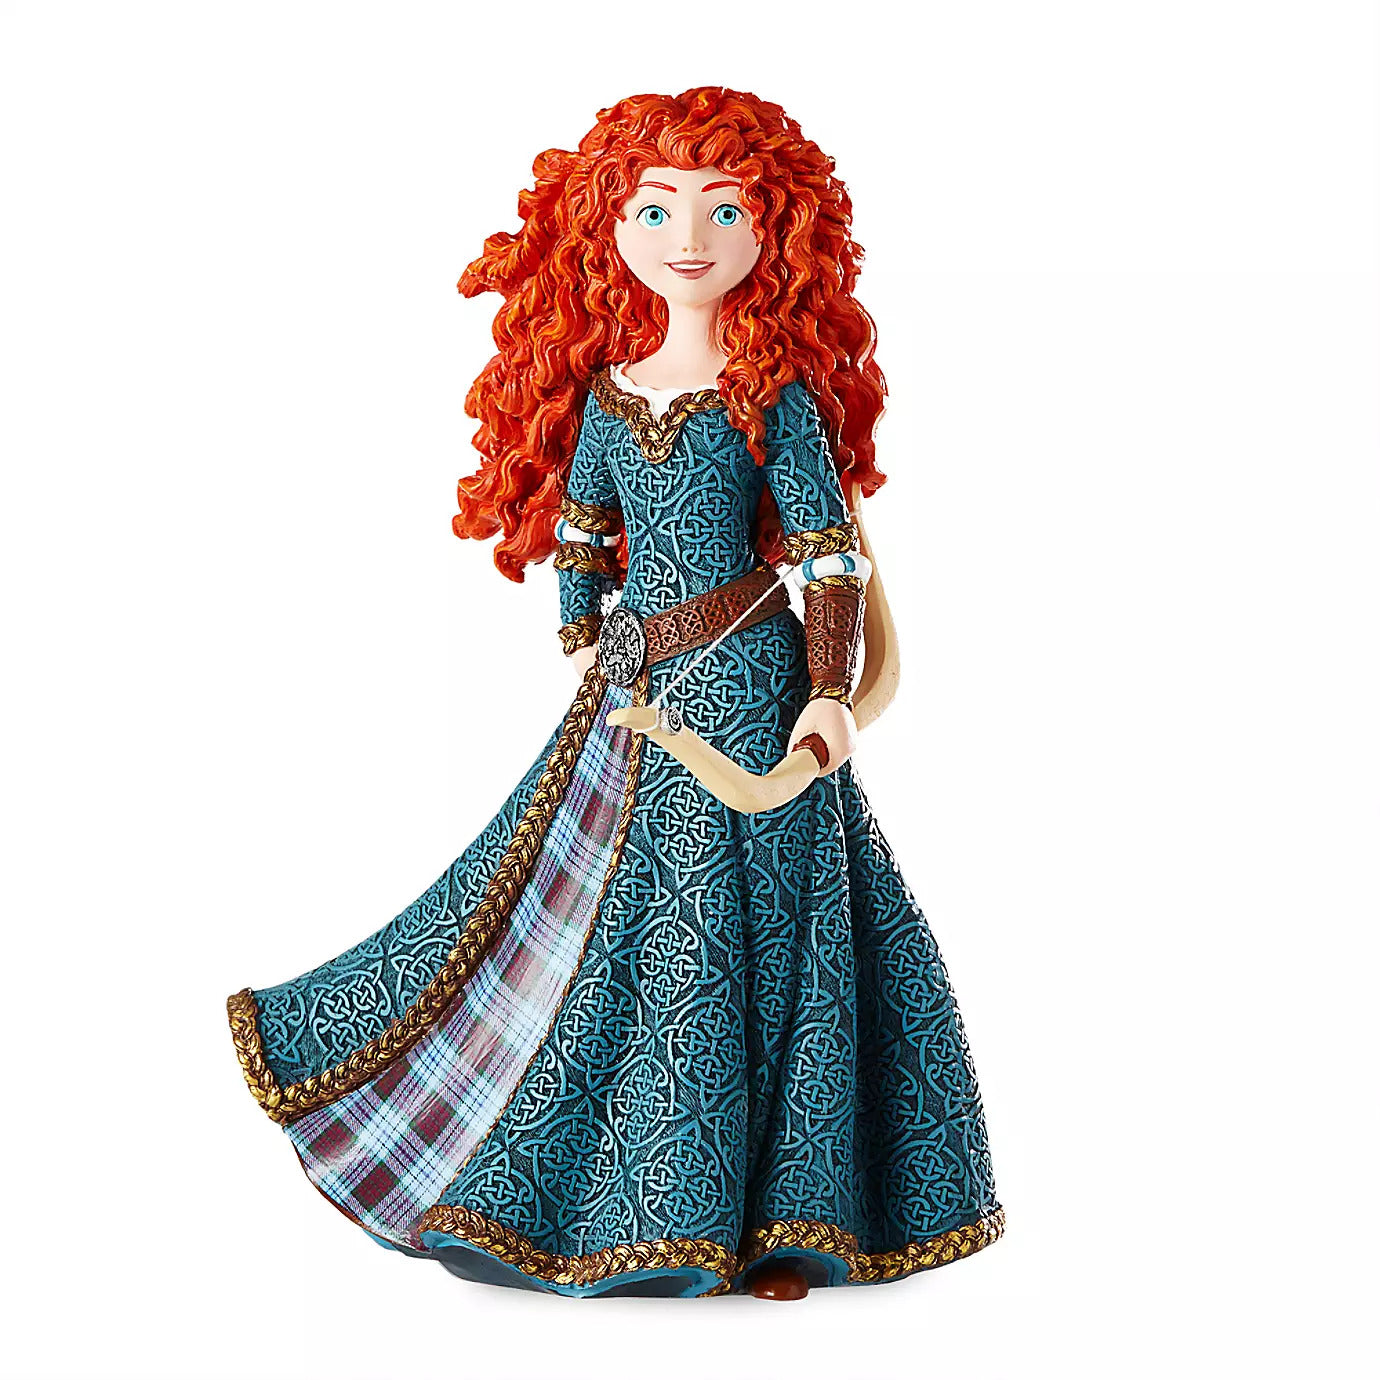 Disney Brave Merida Figure by Enesco -Enesco - India - www.superherotoystore.com